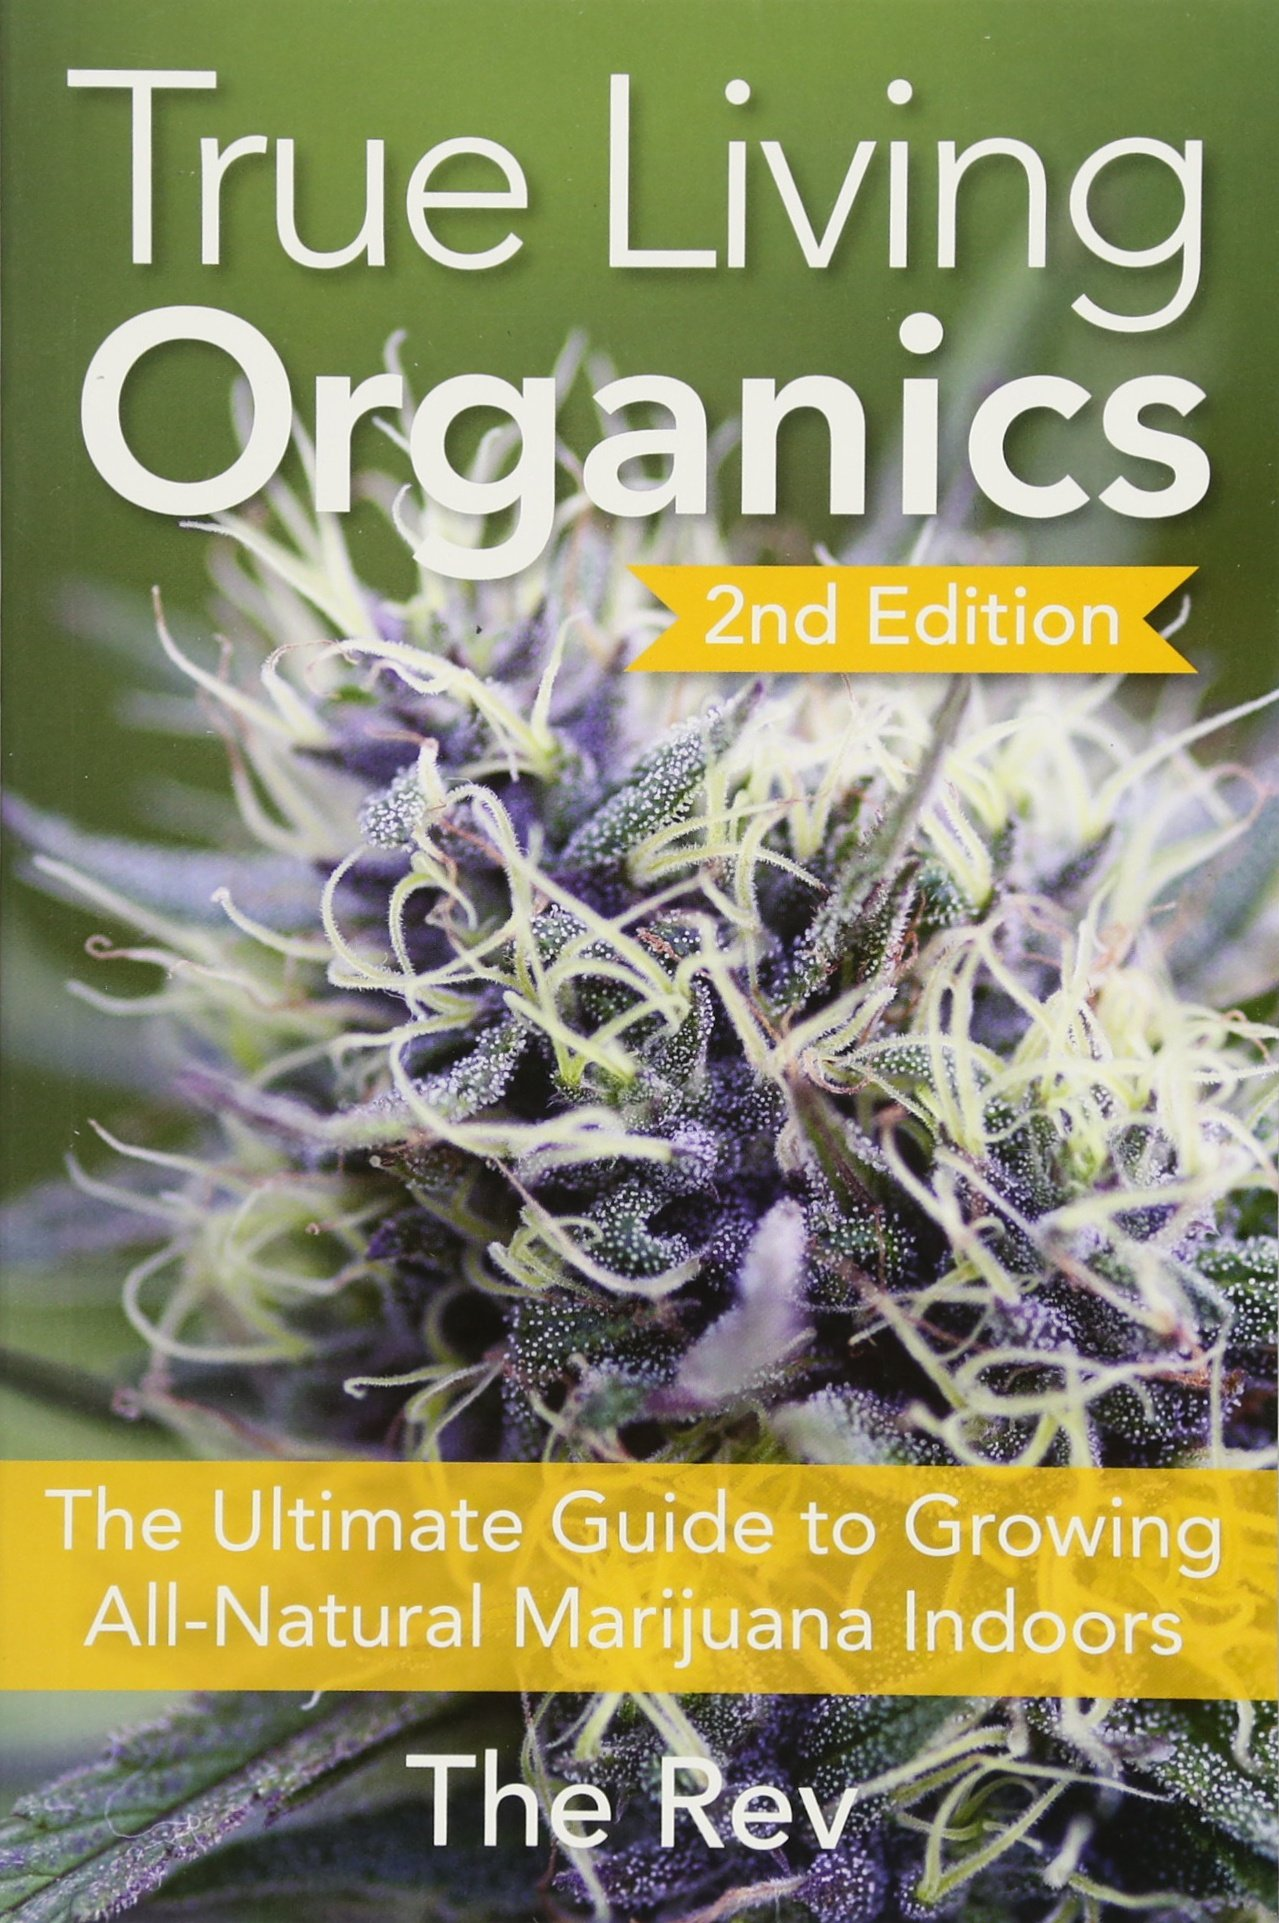 Image OfTrue Living Organics: The Ultimate Guide To Growing All-Natural Marijuana Indoors